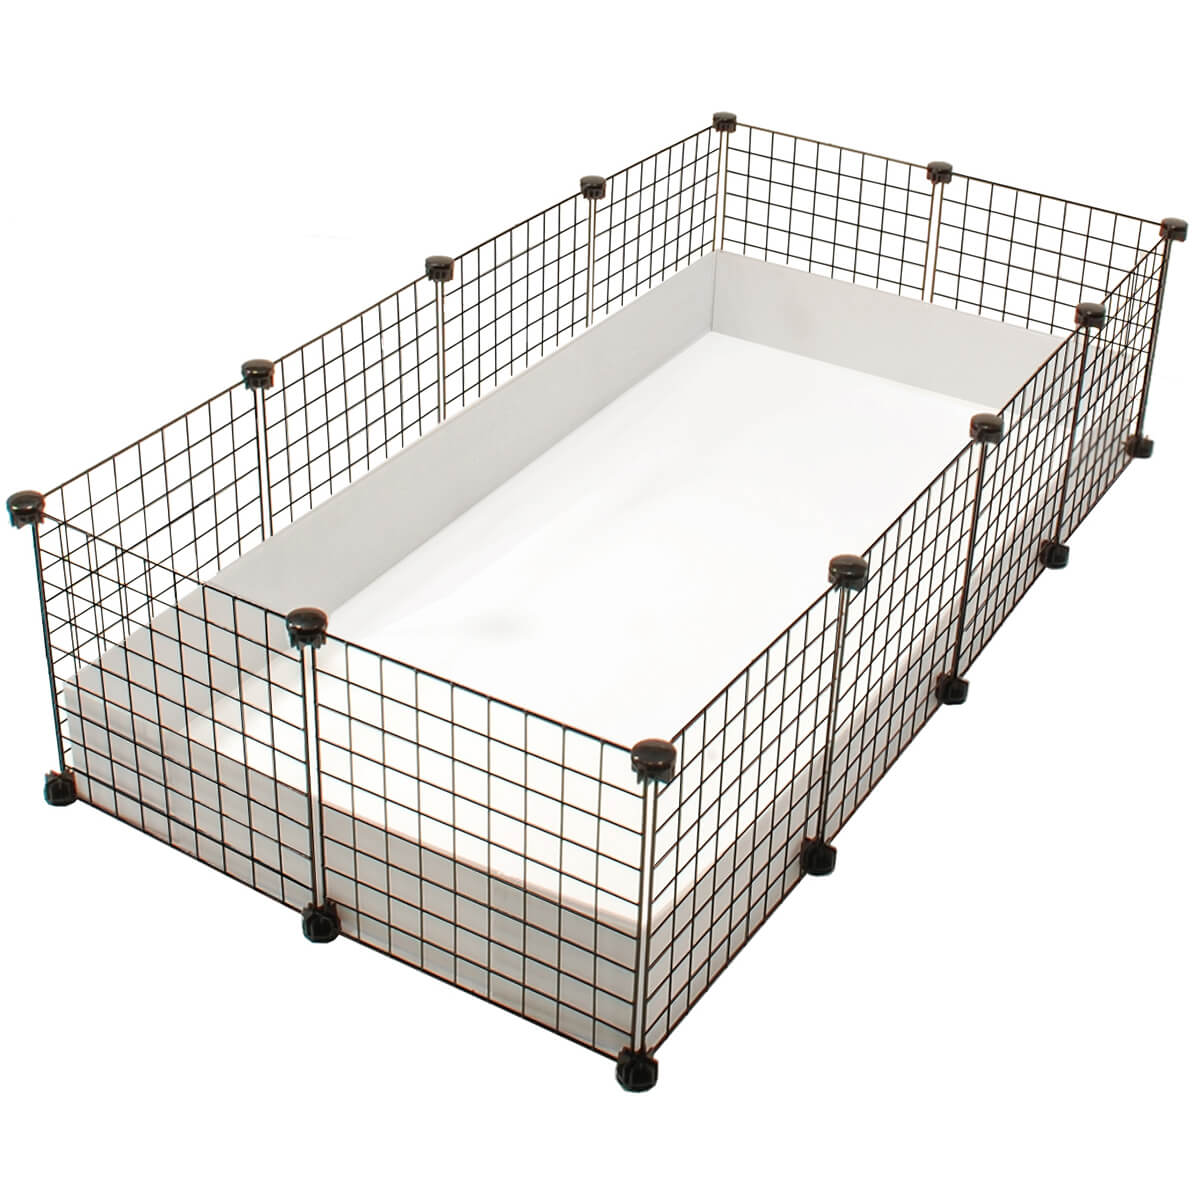 Large 2x4 Grids Cage Standard Cages Cagetopia